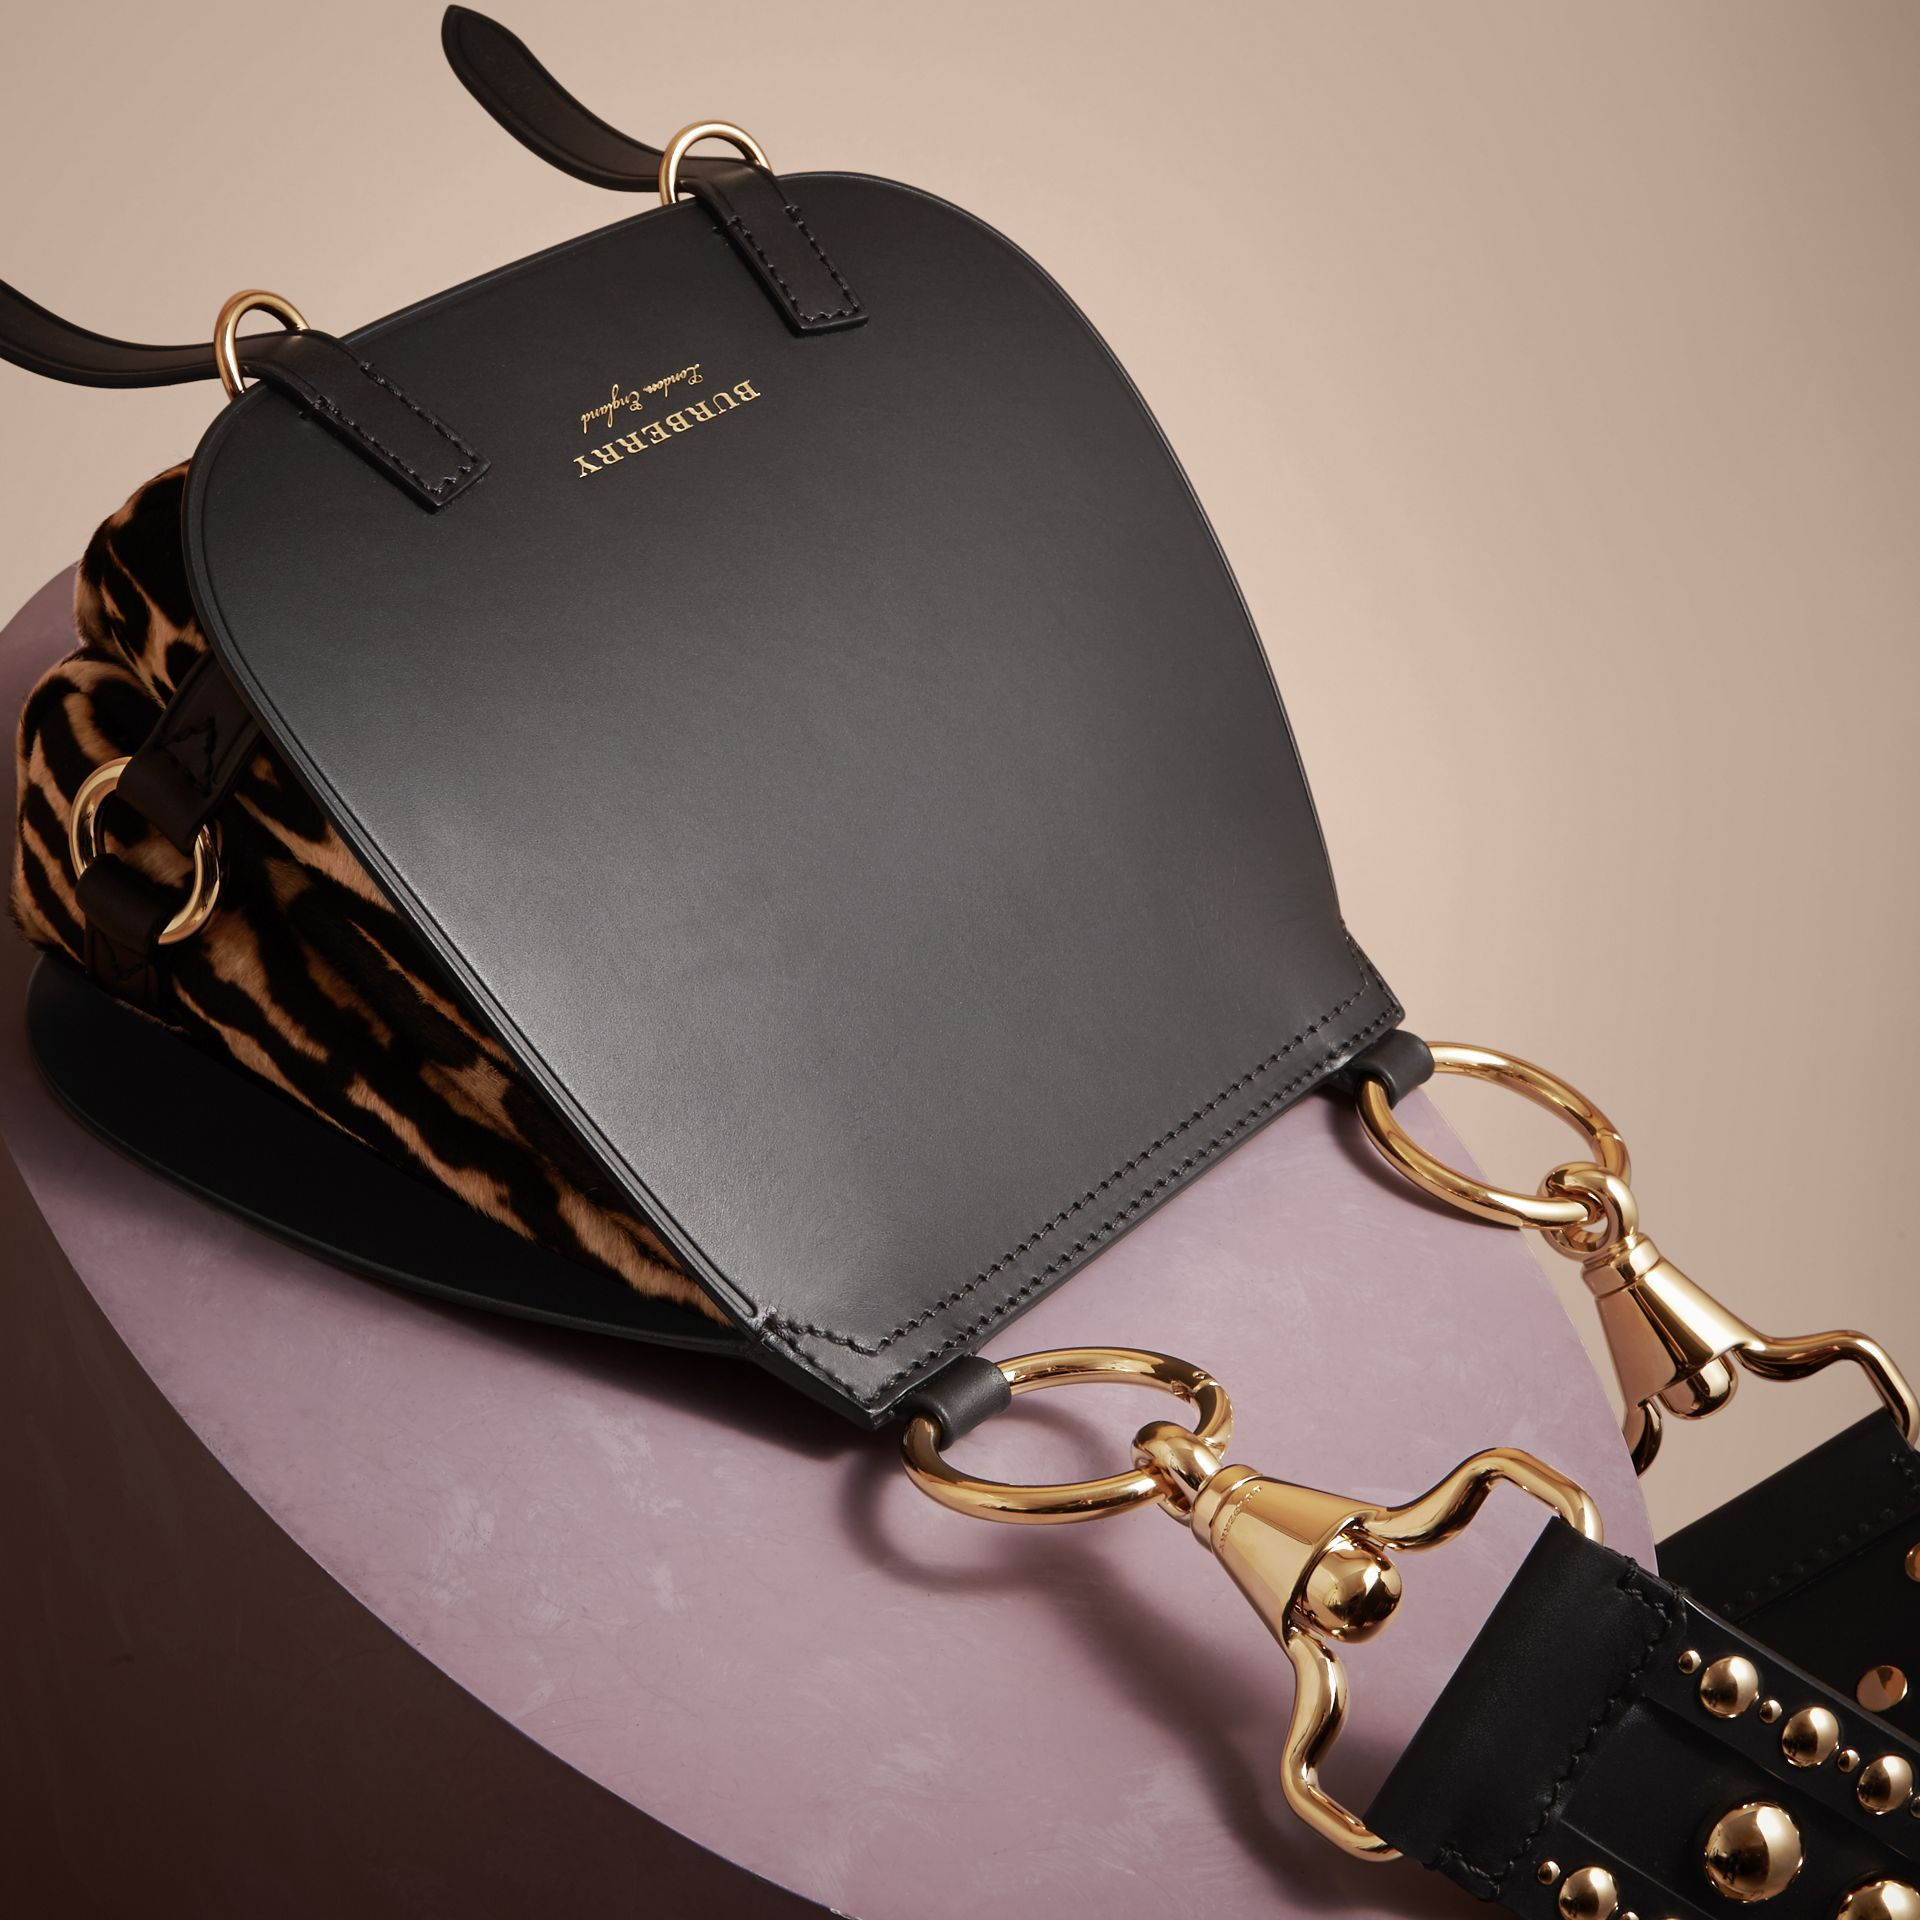 Borsa The Bridle in pelle e cavallino (Nero) - Donna | Burberry - immagine della galleria 7